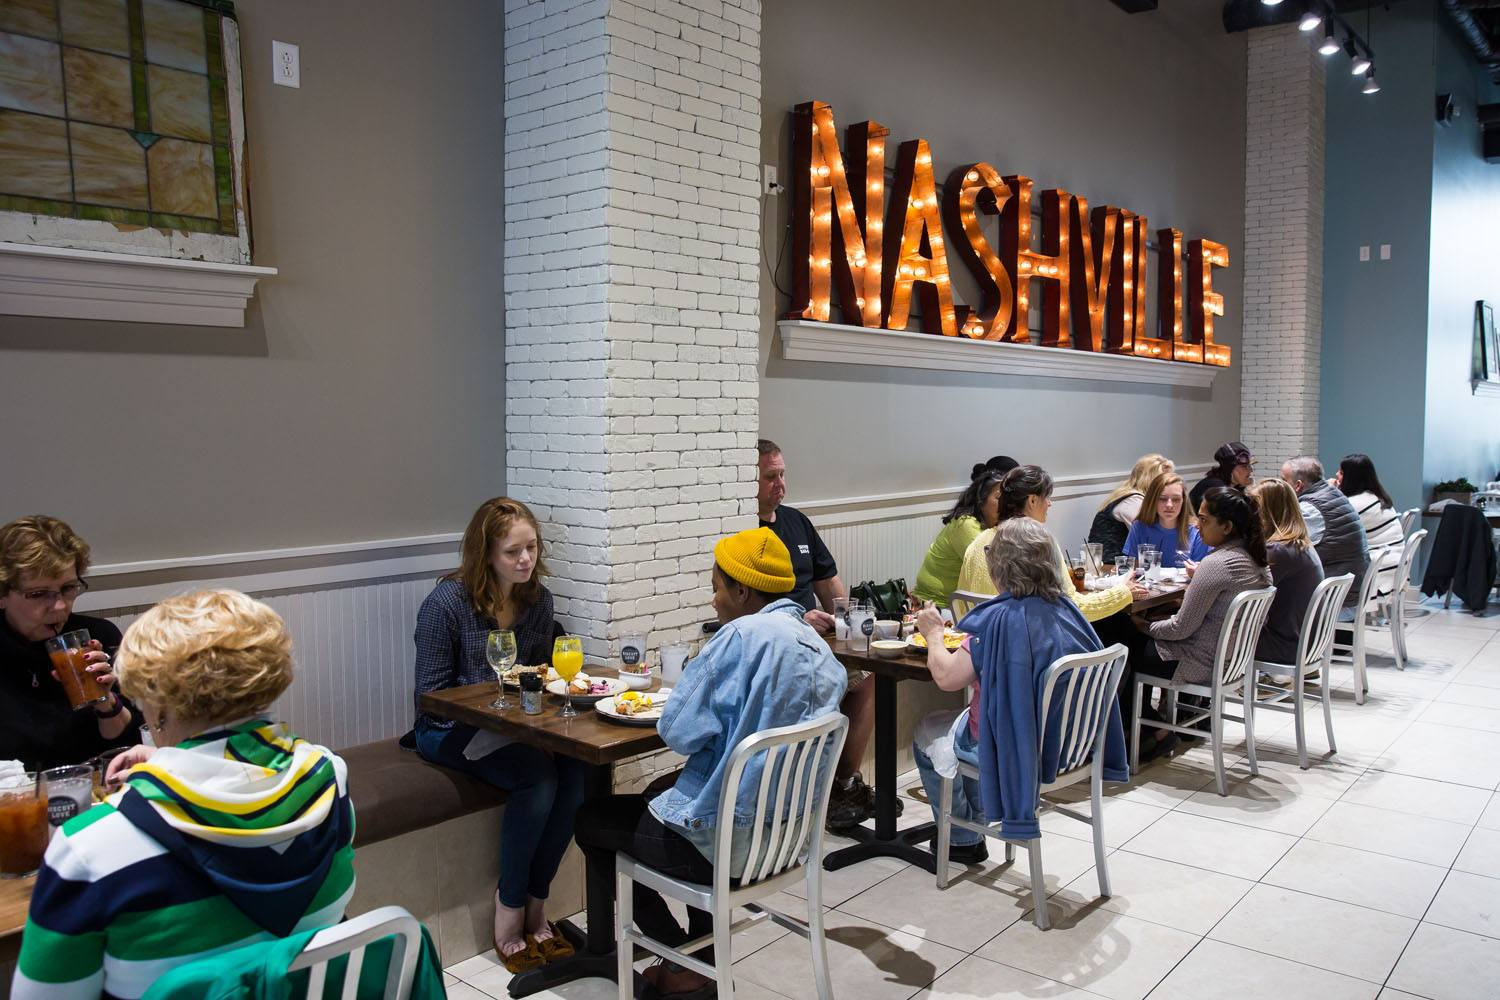 Where to eat in nashville tennessee earth trekkers for Best places for dinner in nashville